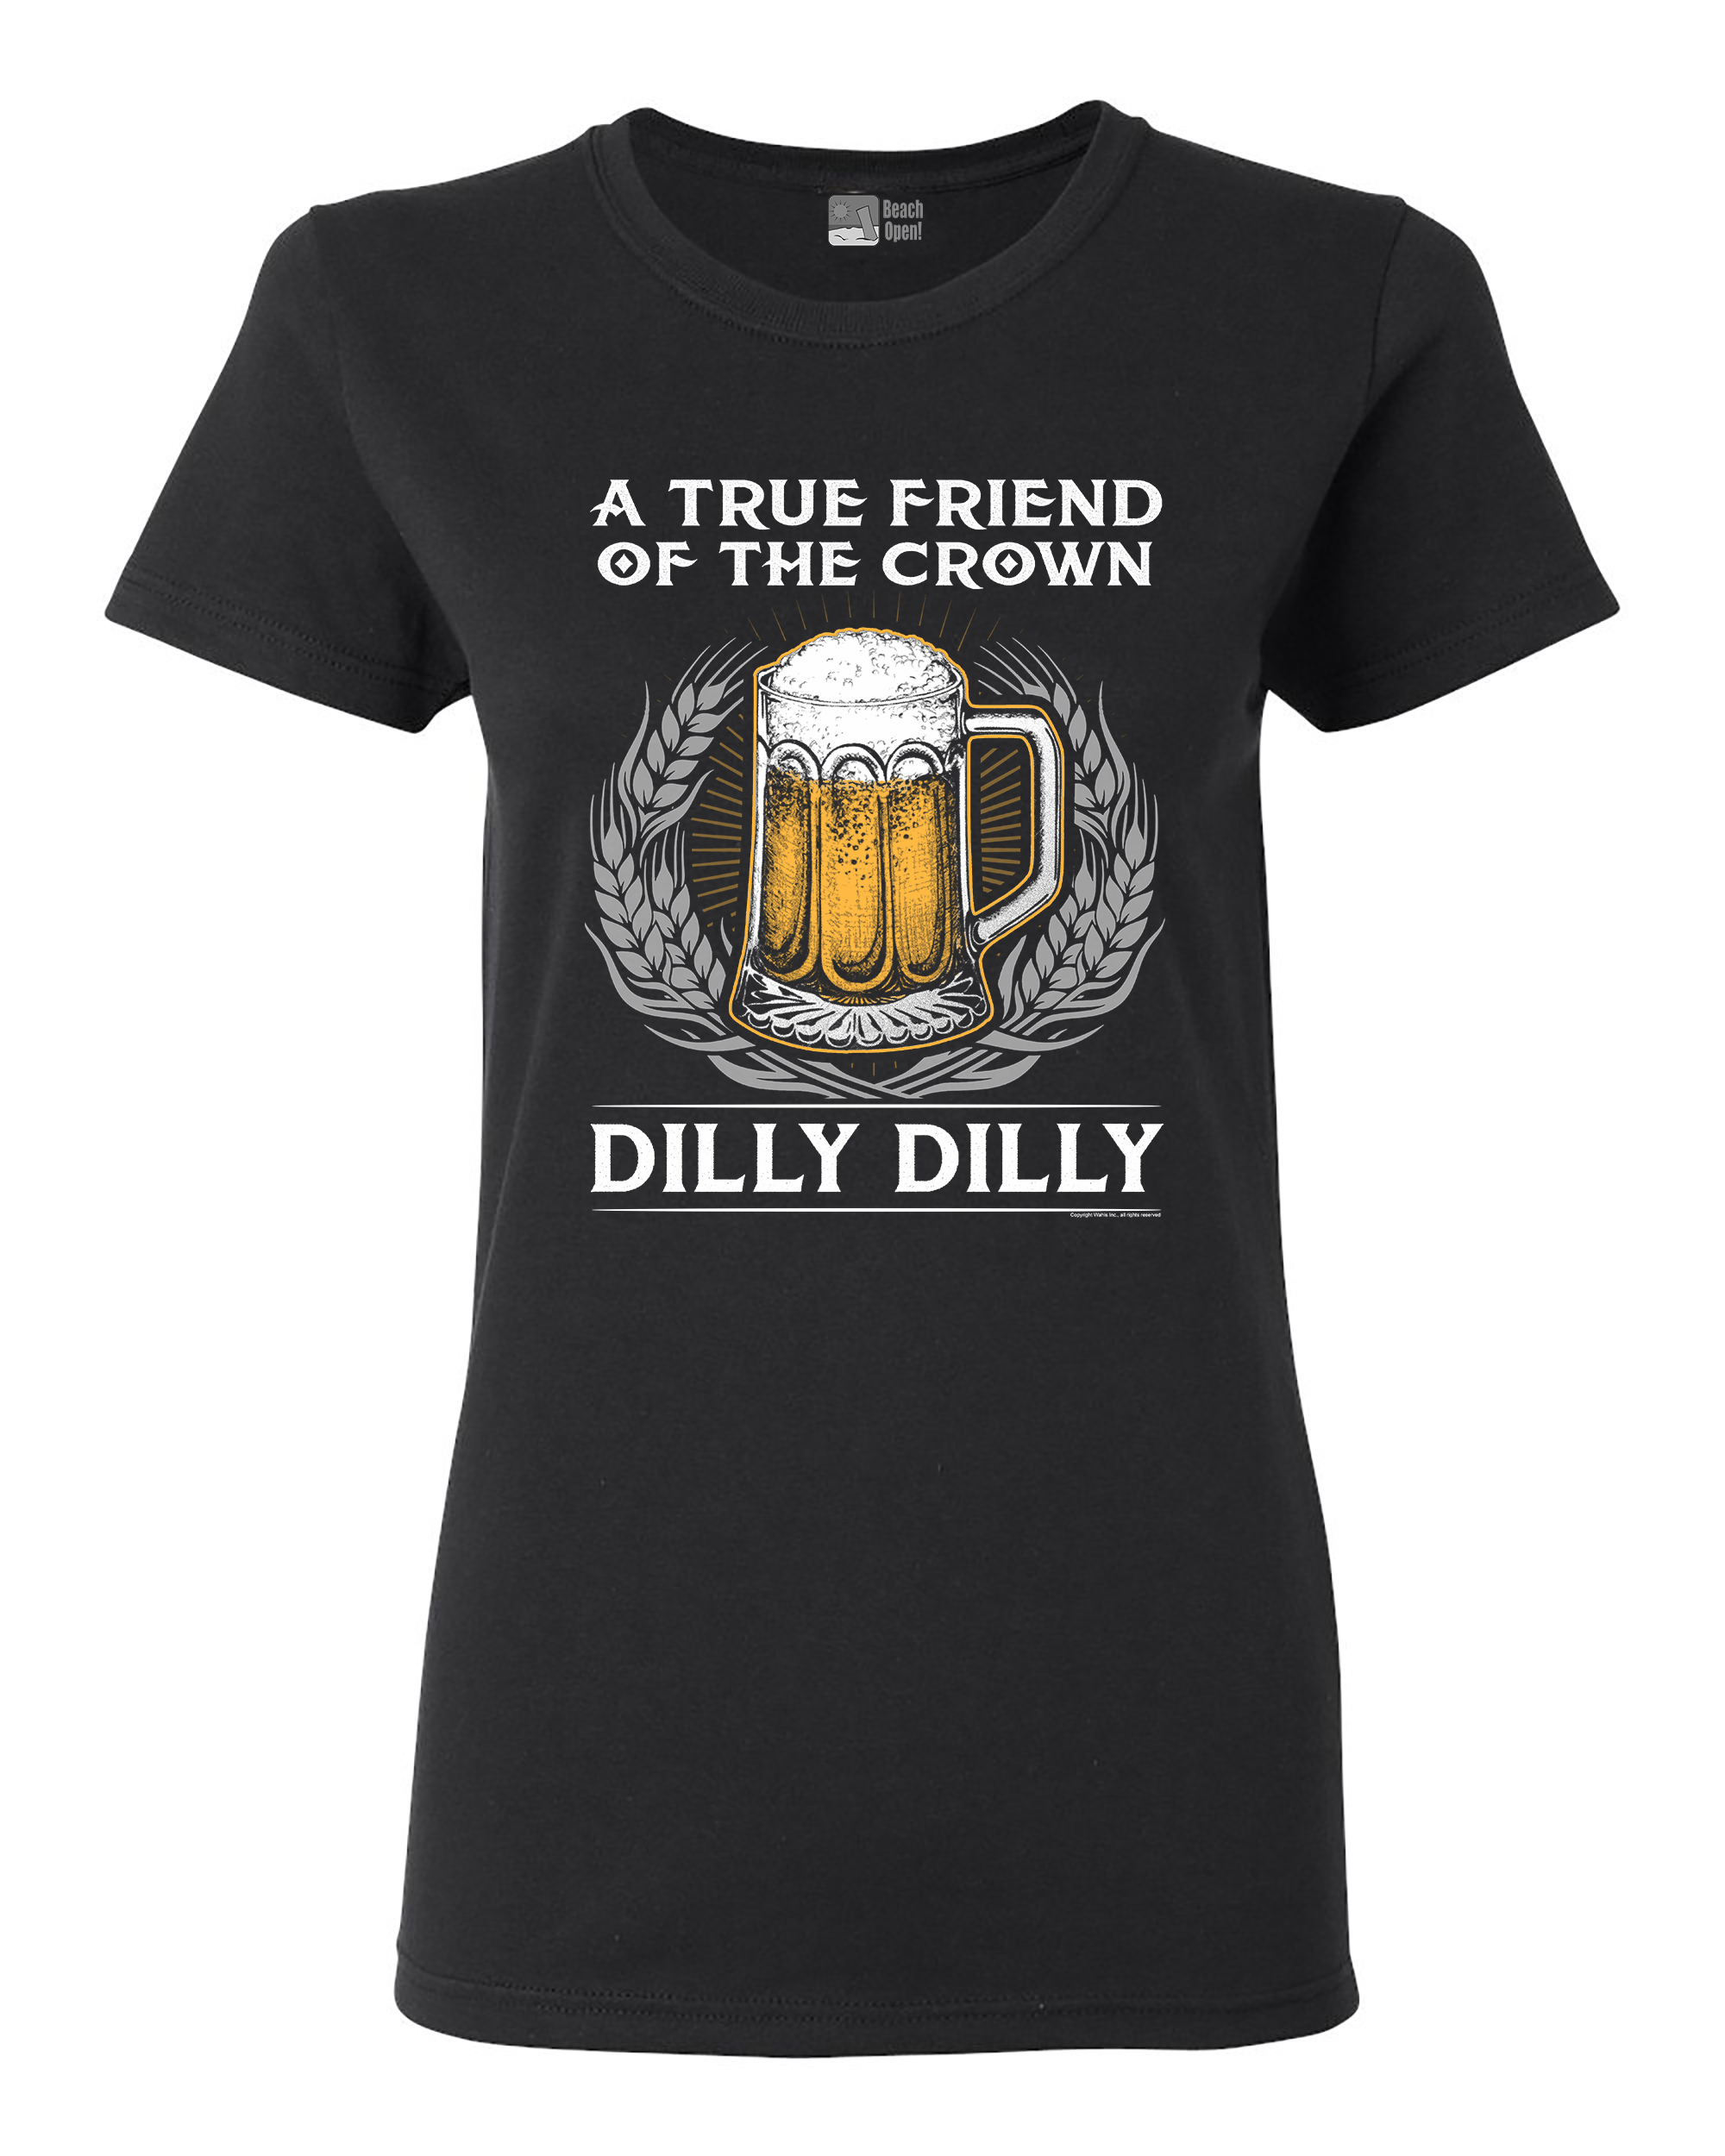 Ladies A True Friend Of The Crown Dilly Dilly Beer Party Funny DT T-Shirt Tee